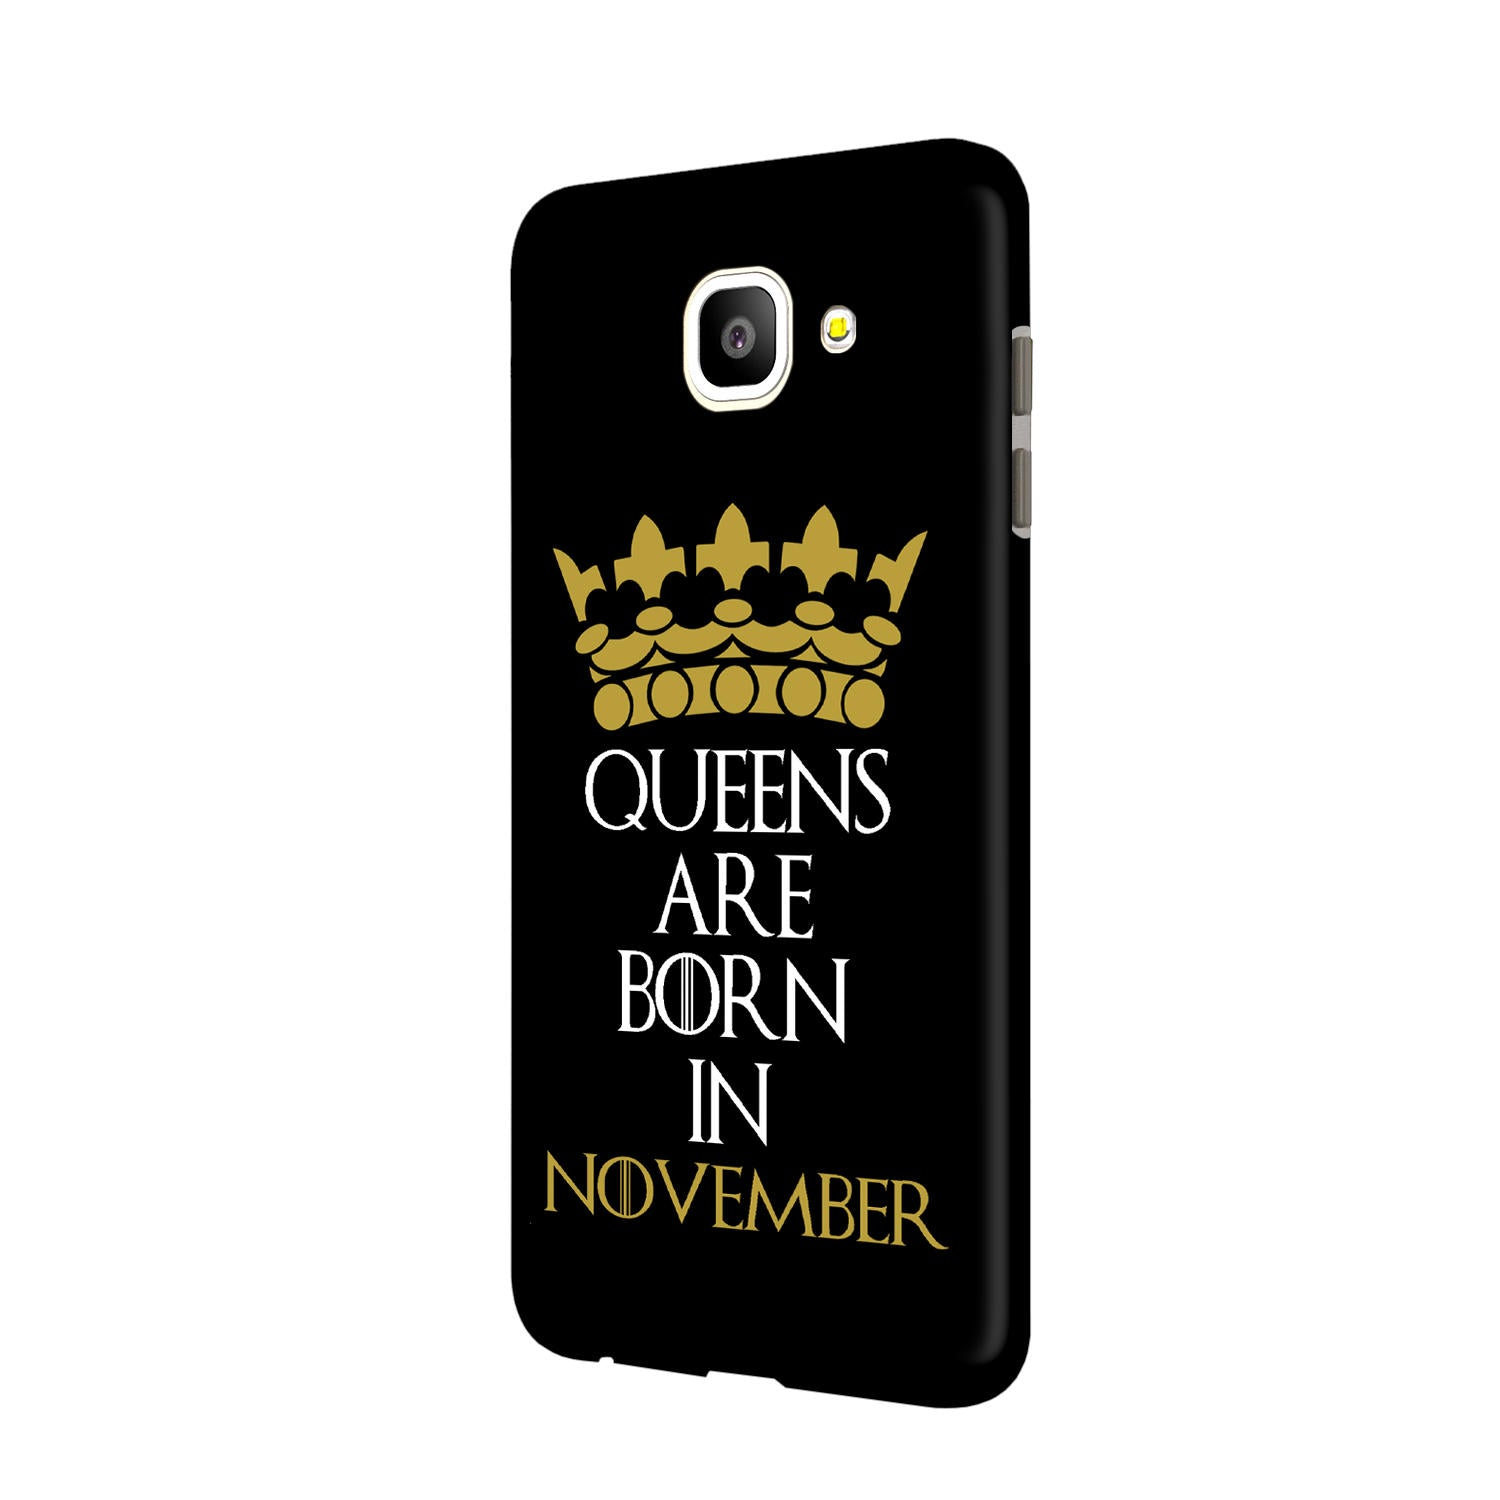 Queens November Samsung Galaxy J7 Max Mobile Cover Case - MADANYU